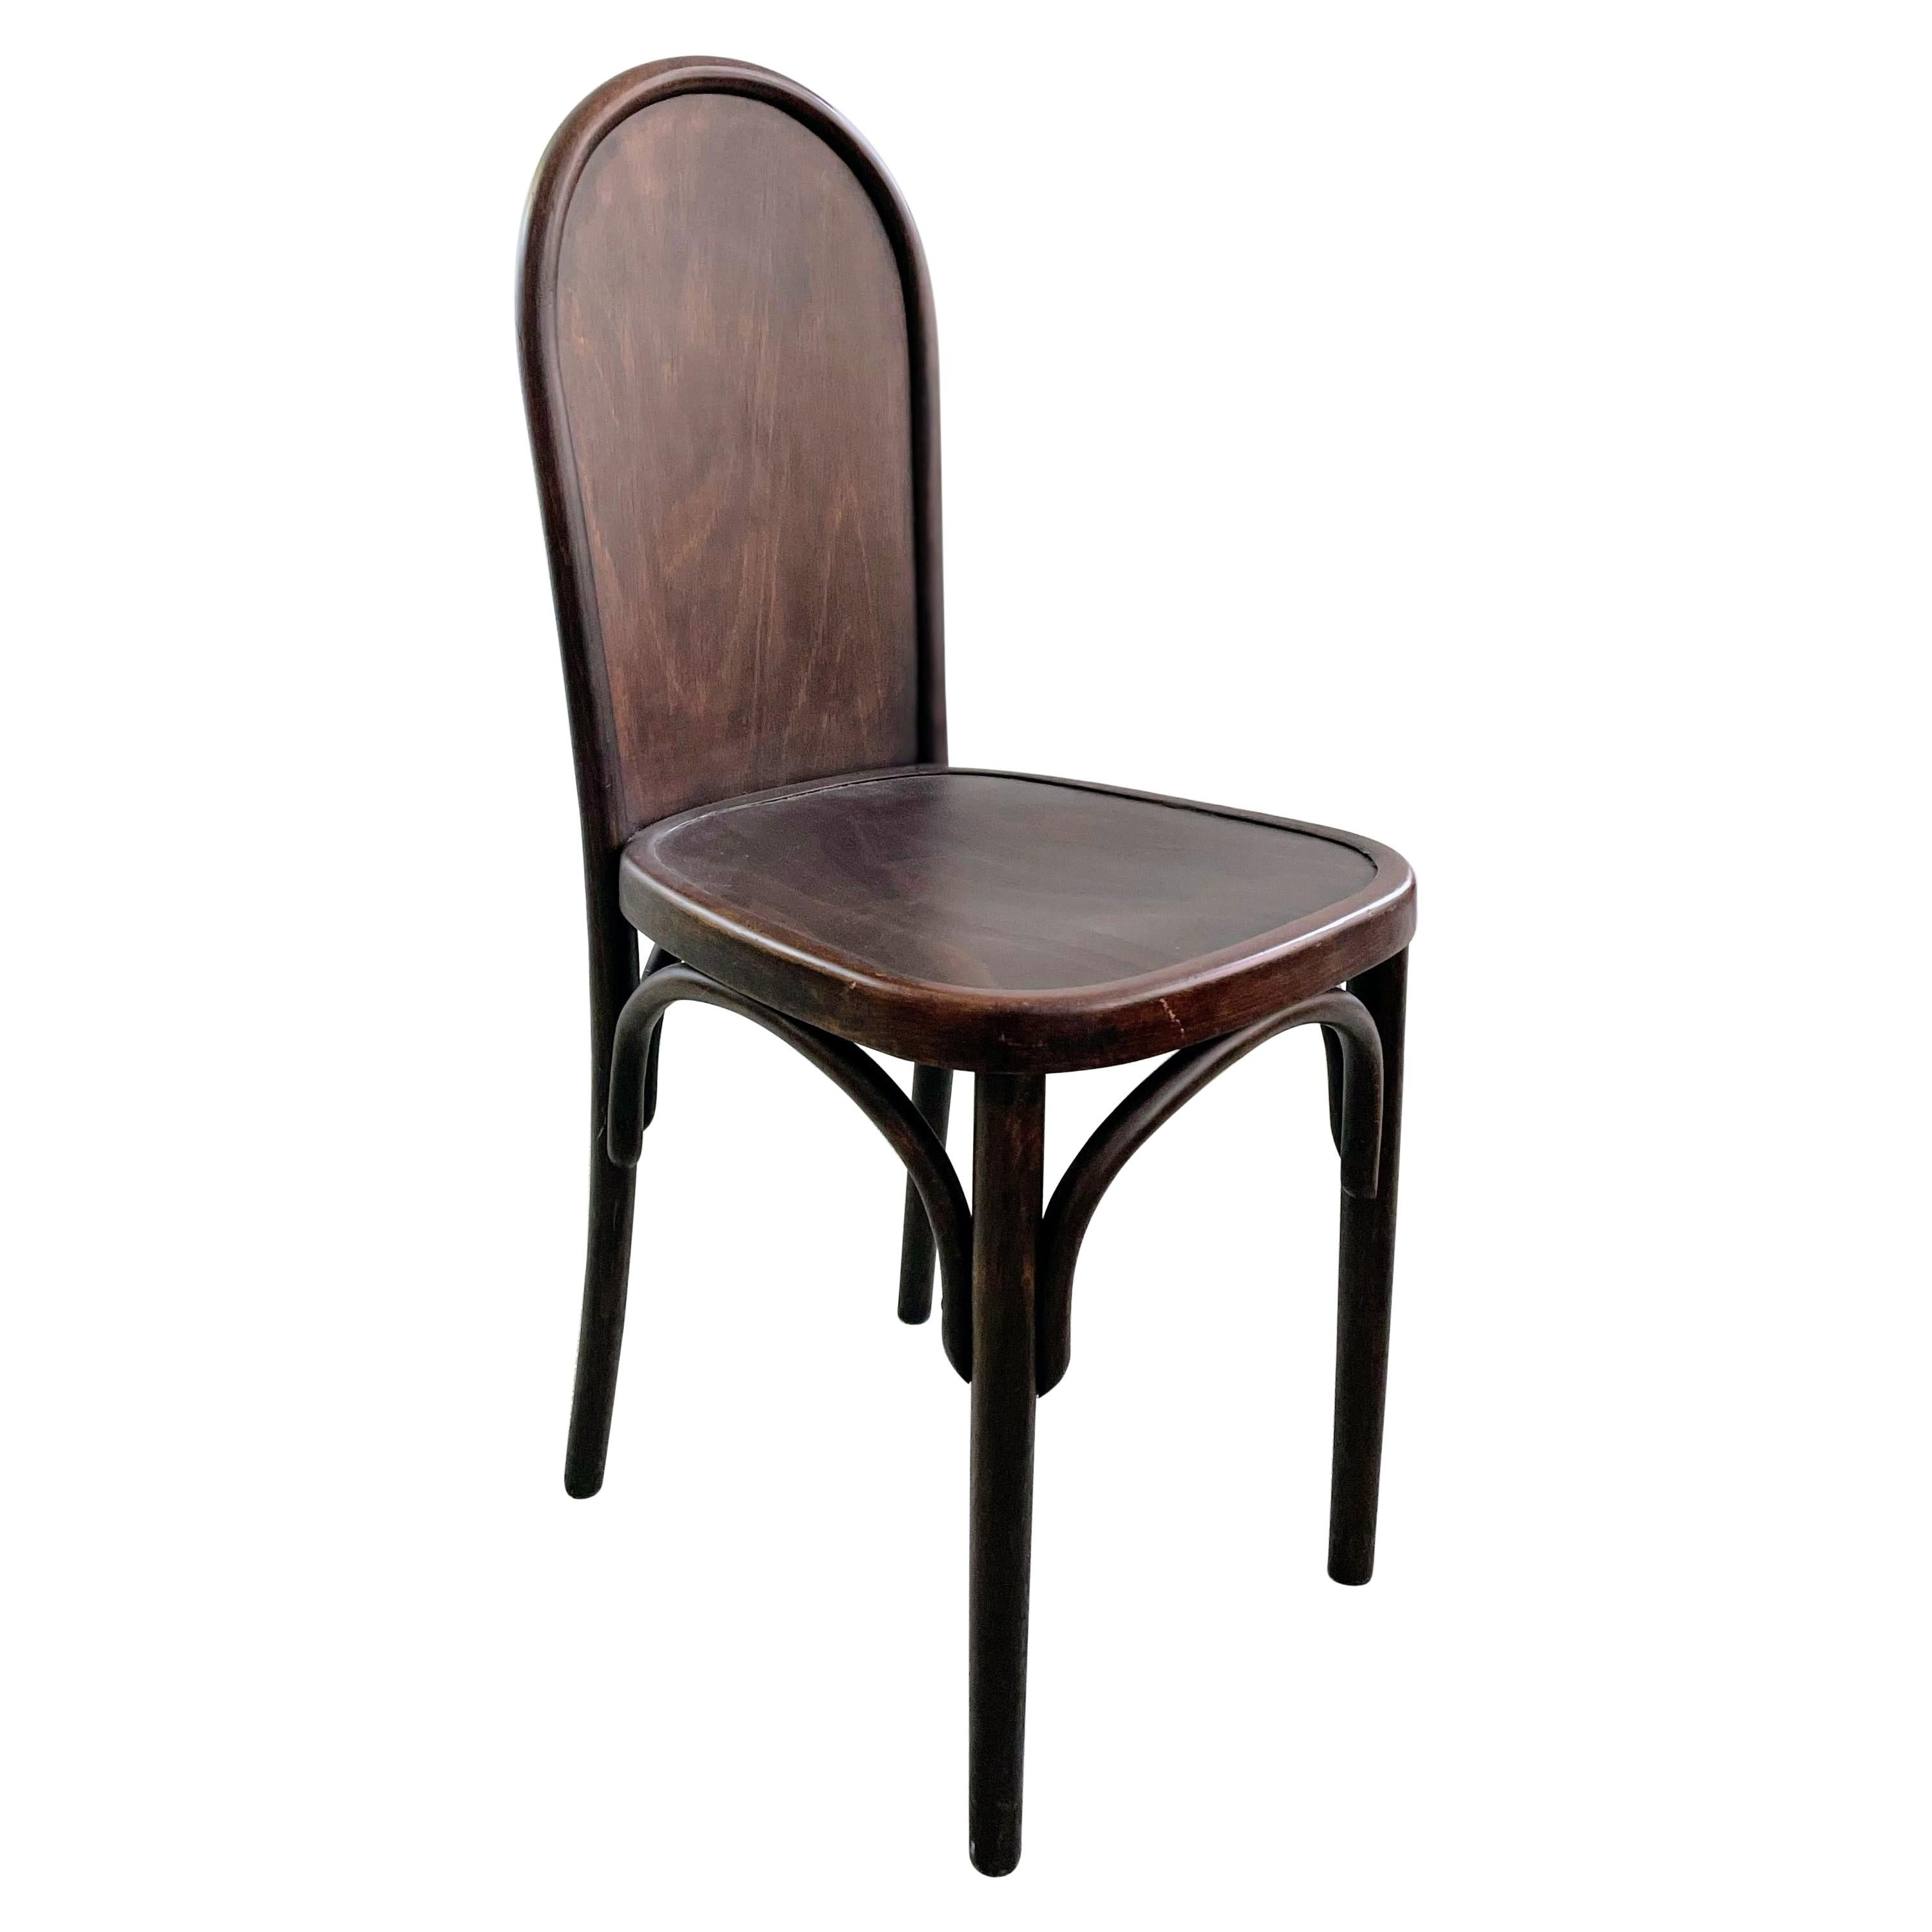 Bentwood Chair Attributed to Josef Hoffmann, Austria, circa 1910